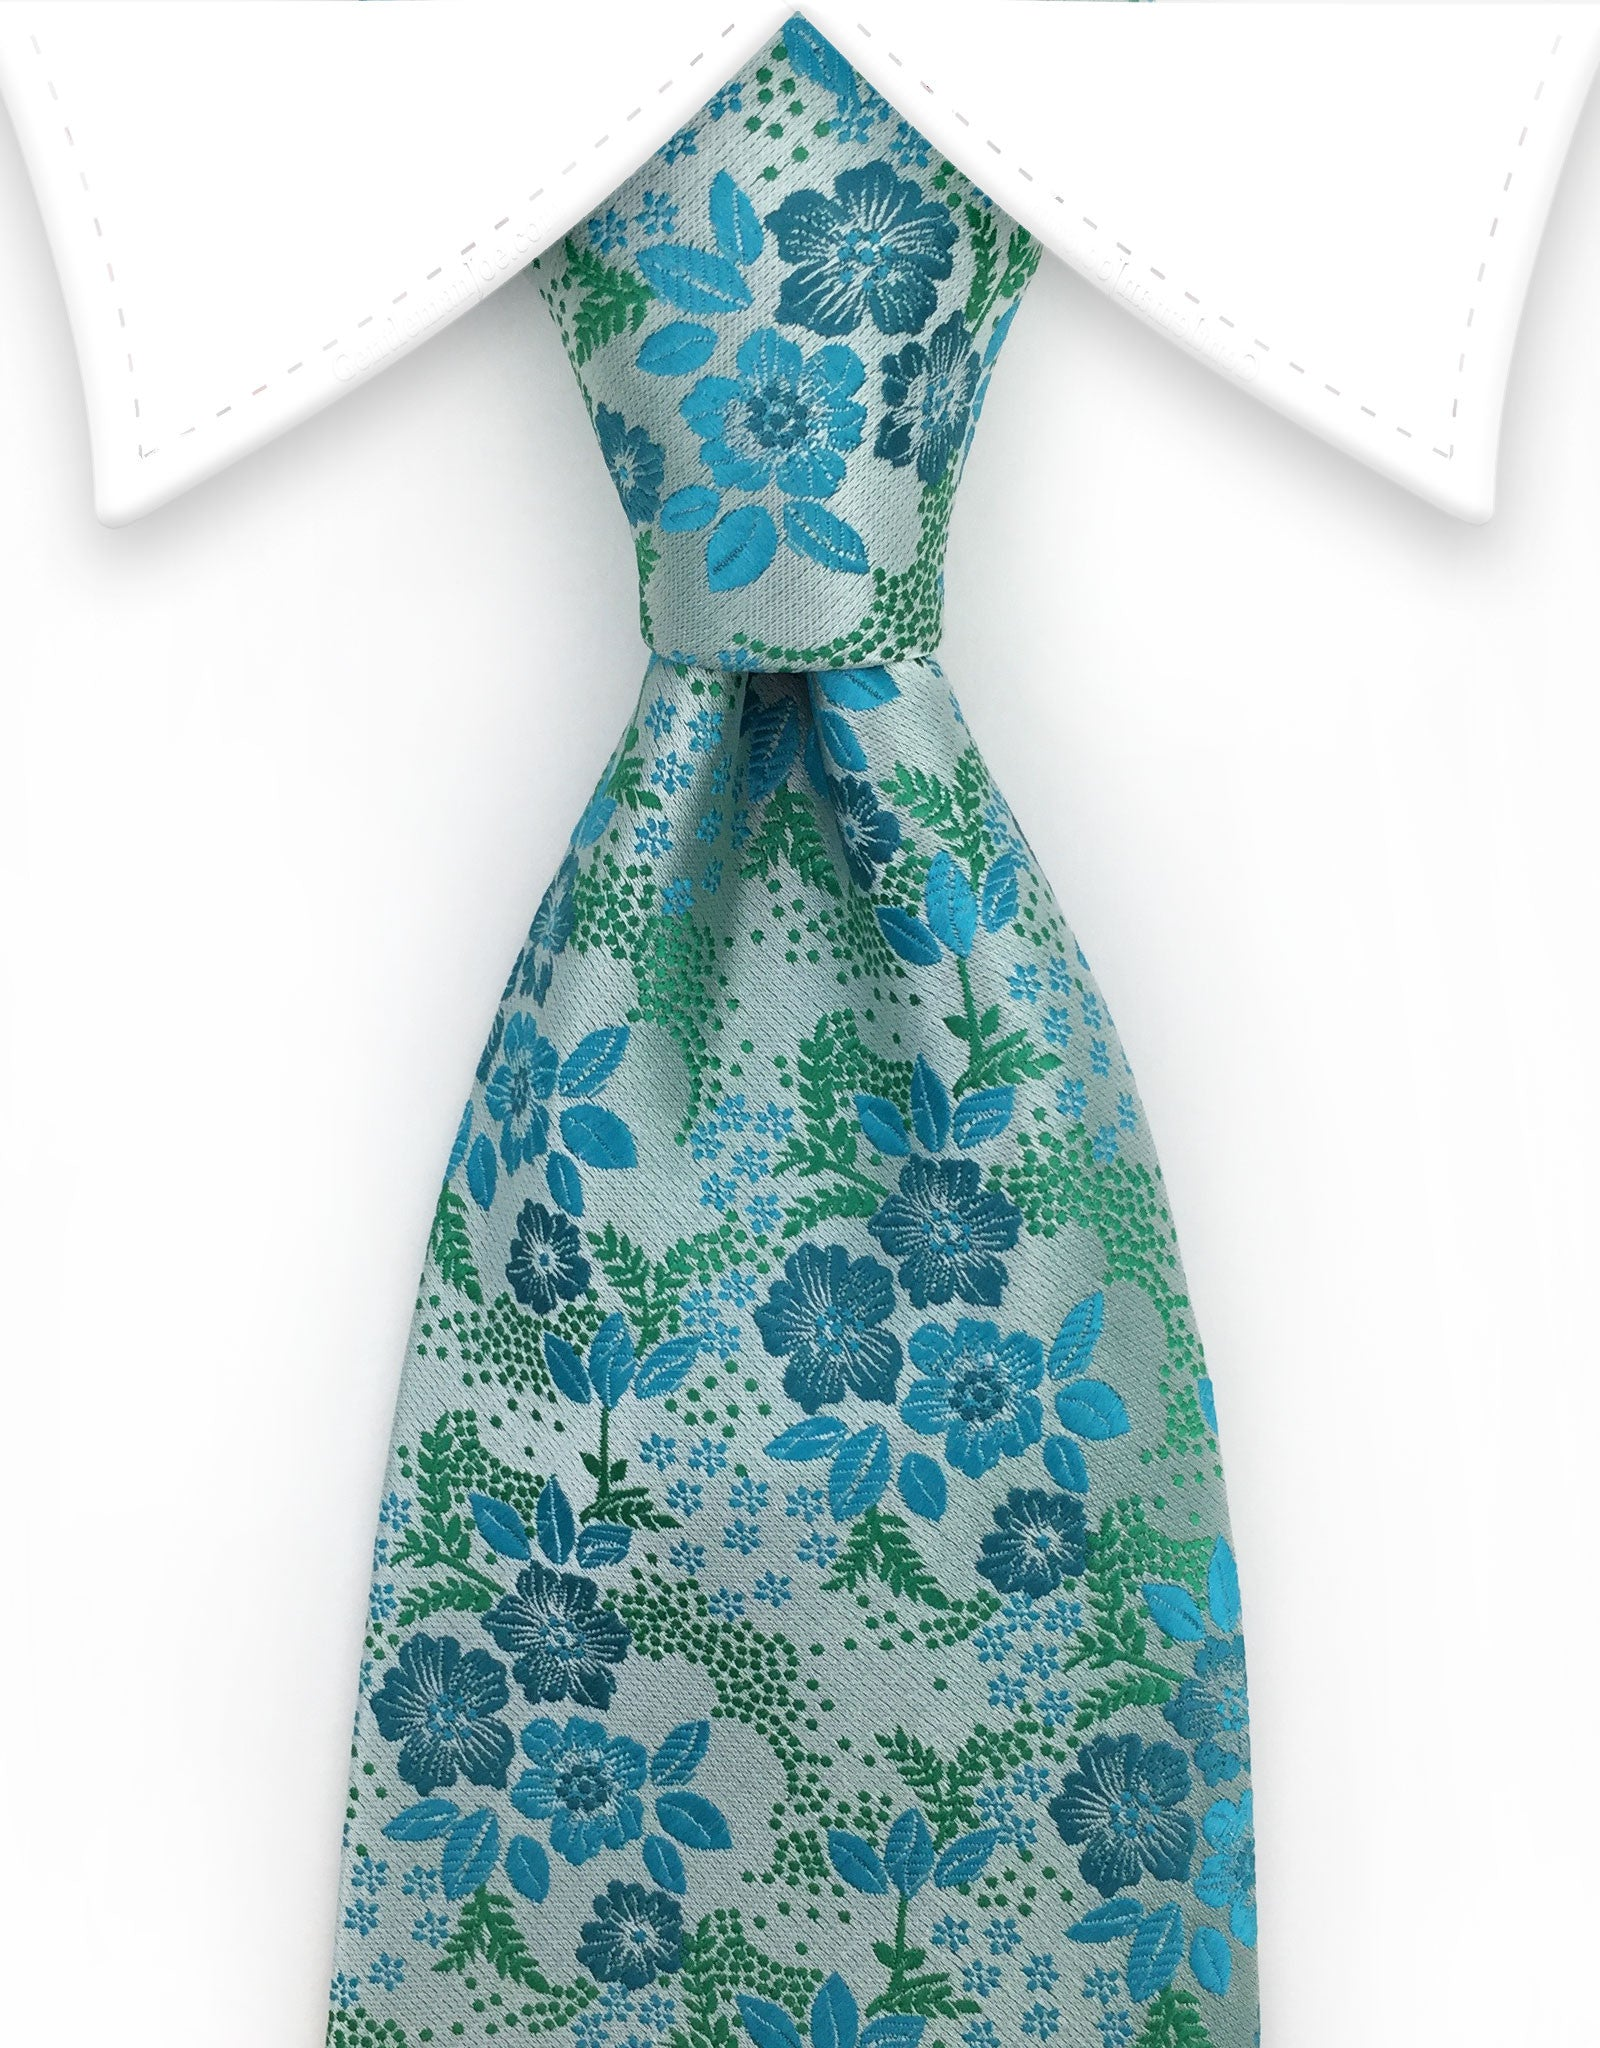 a775f0ed4014 Seafoam Green & Turquoise Floral Tie